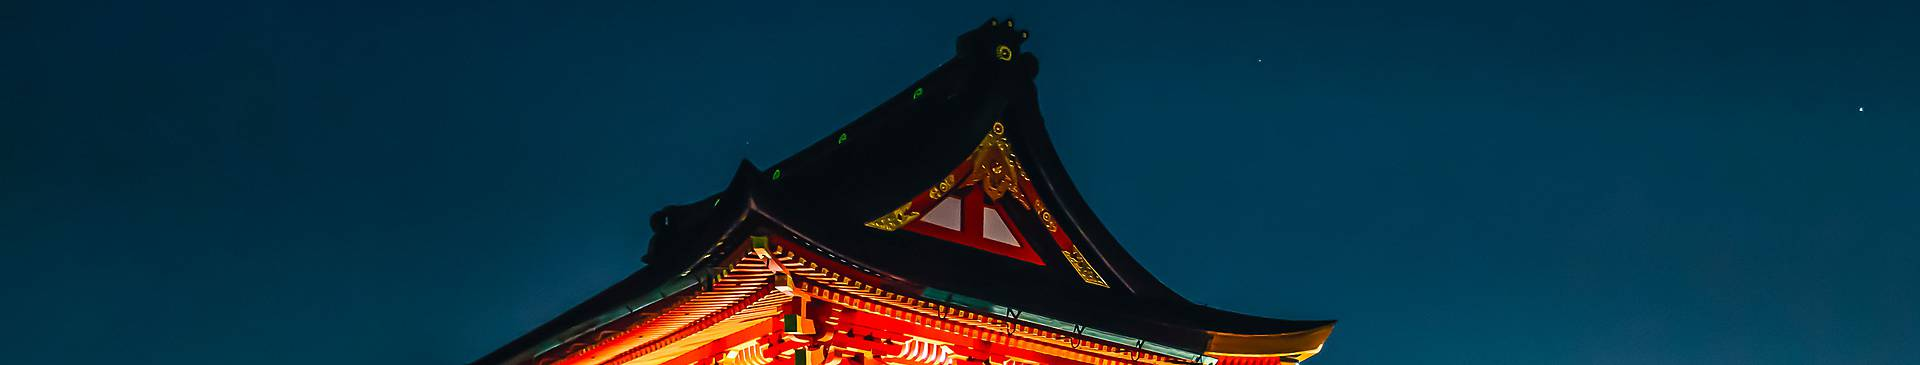 Historical sites in Japan